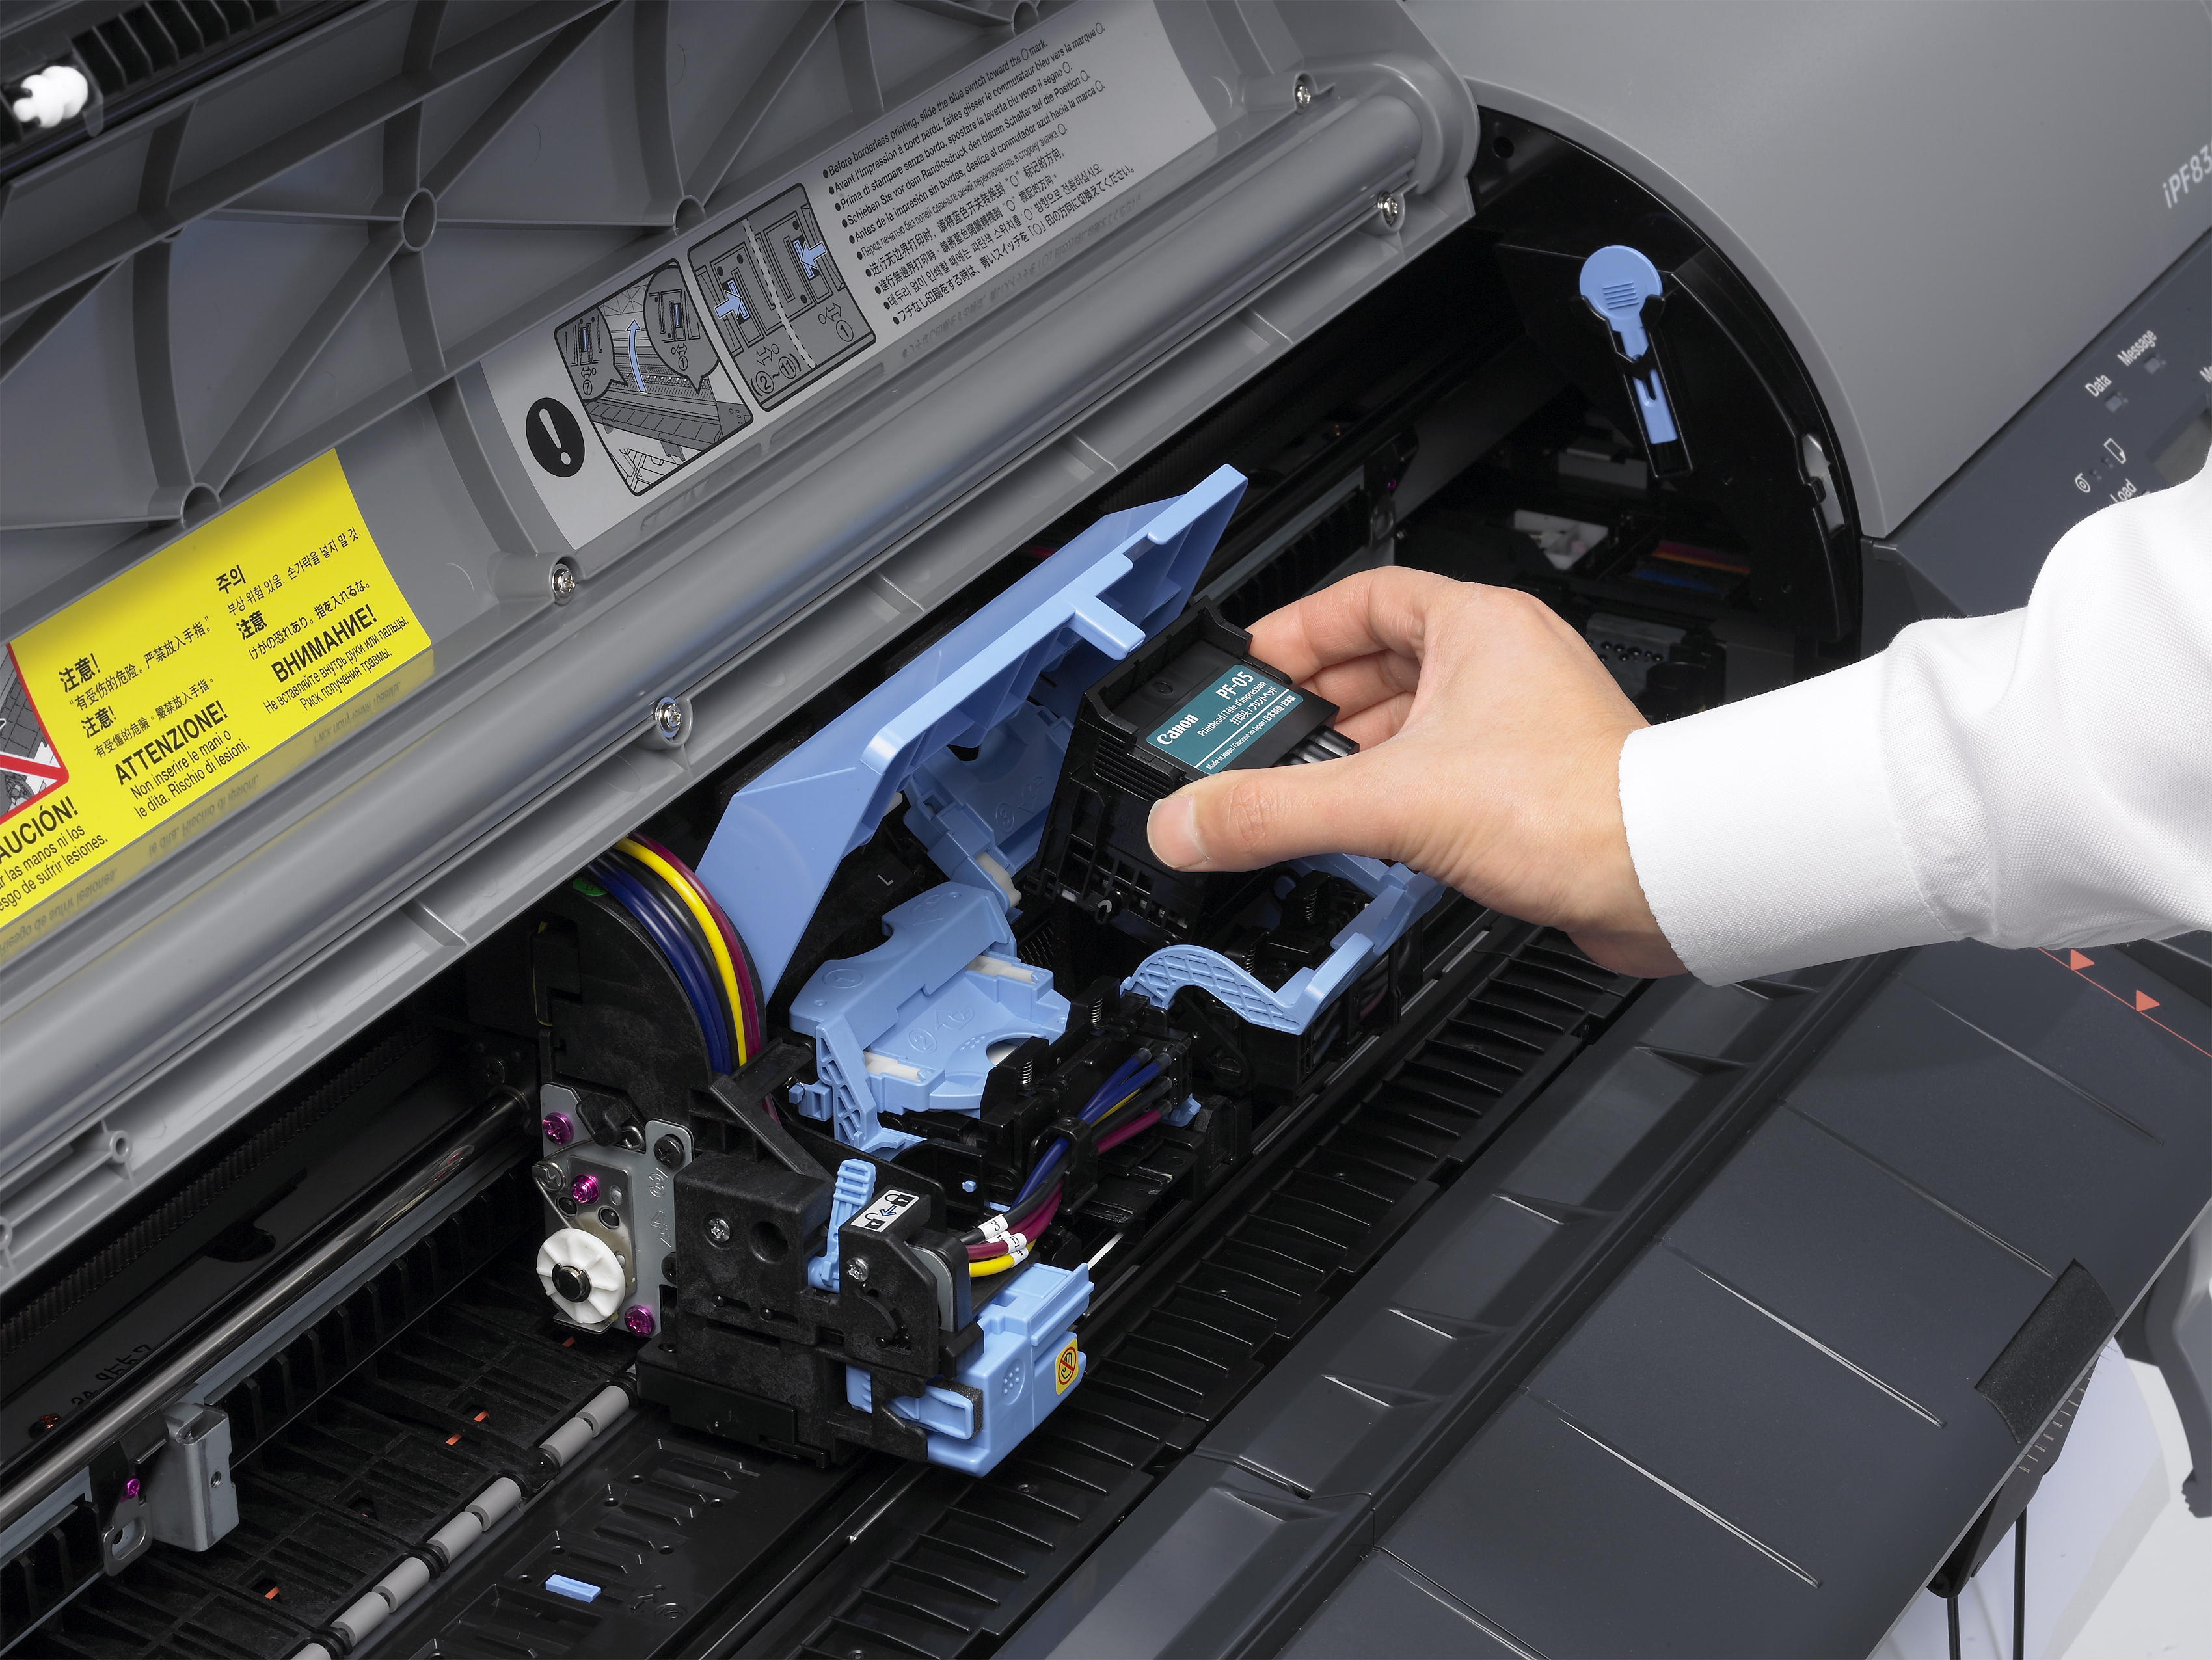 Changing the PF-05 printhead in a Canon iPF8300